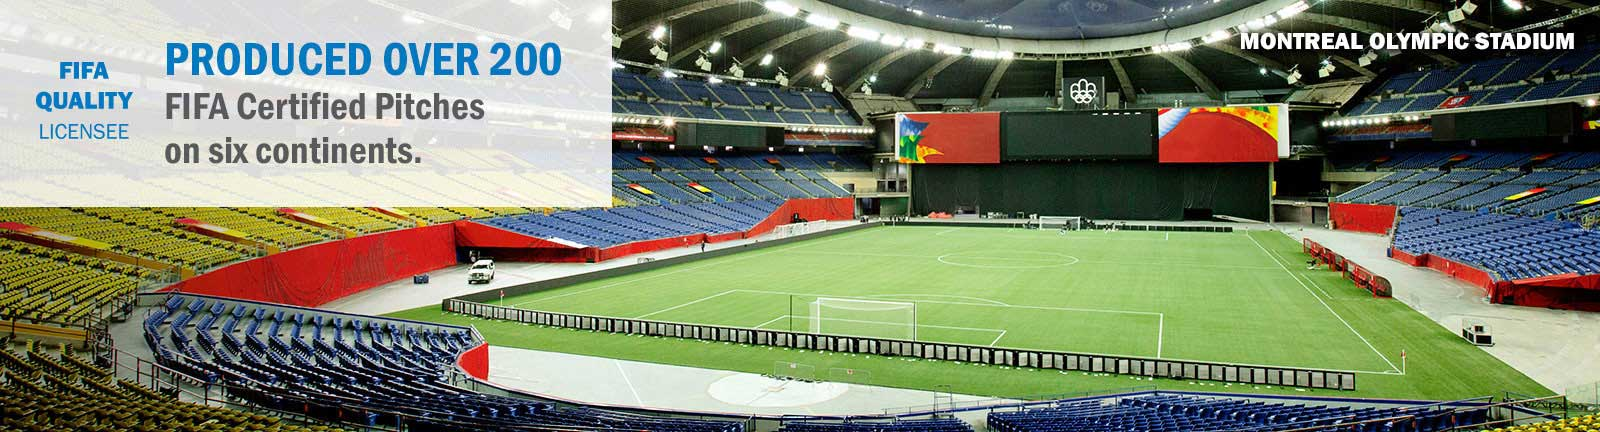 ActGlobal - Synthetic Turf for FIFA